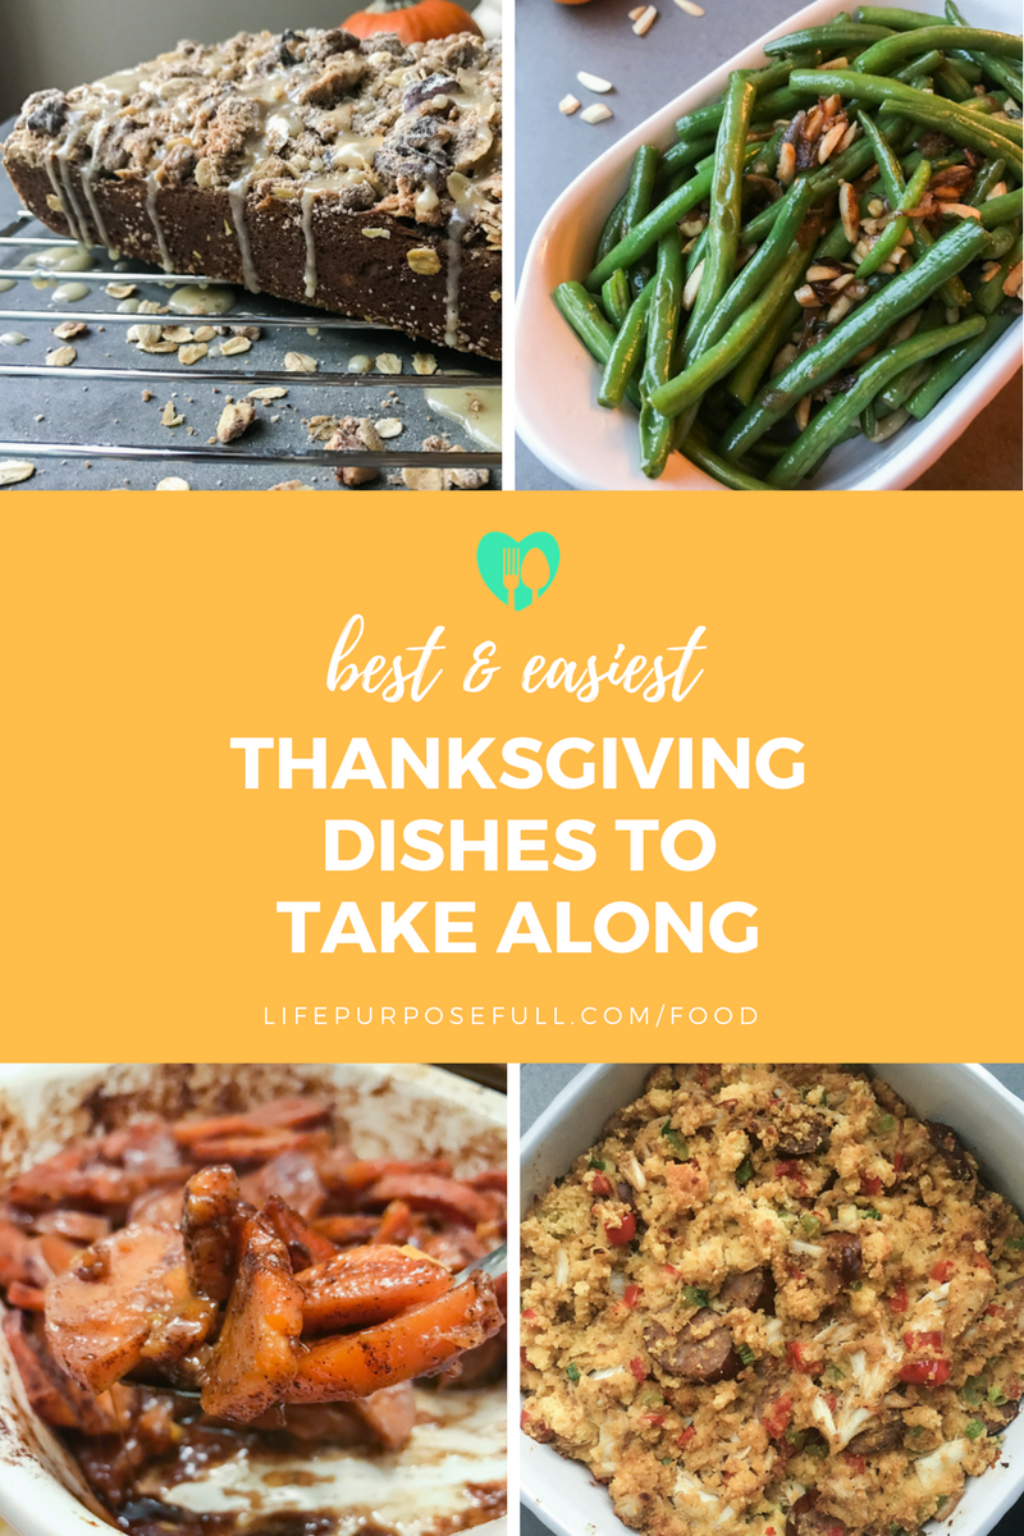 Your helpful guide to Thanksgiving recipes that are easy enough to whip up and take along anywhere you're invited. | lifepurposefull.com